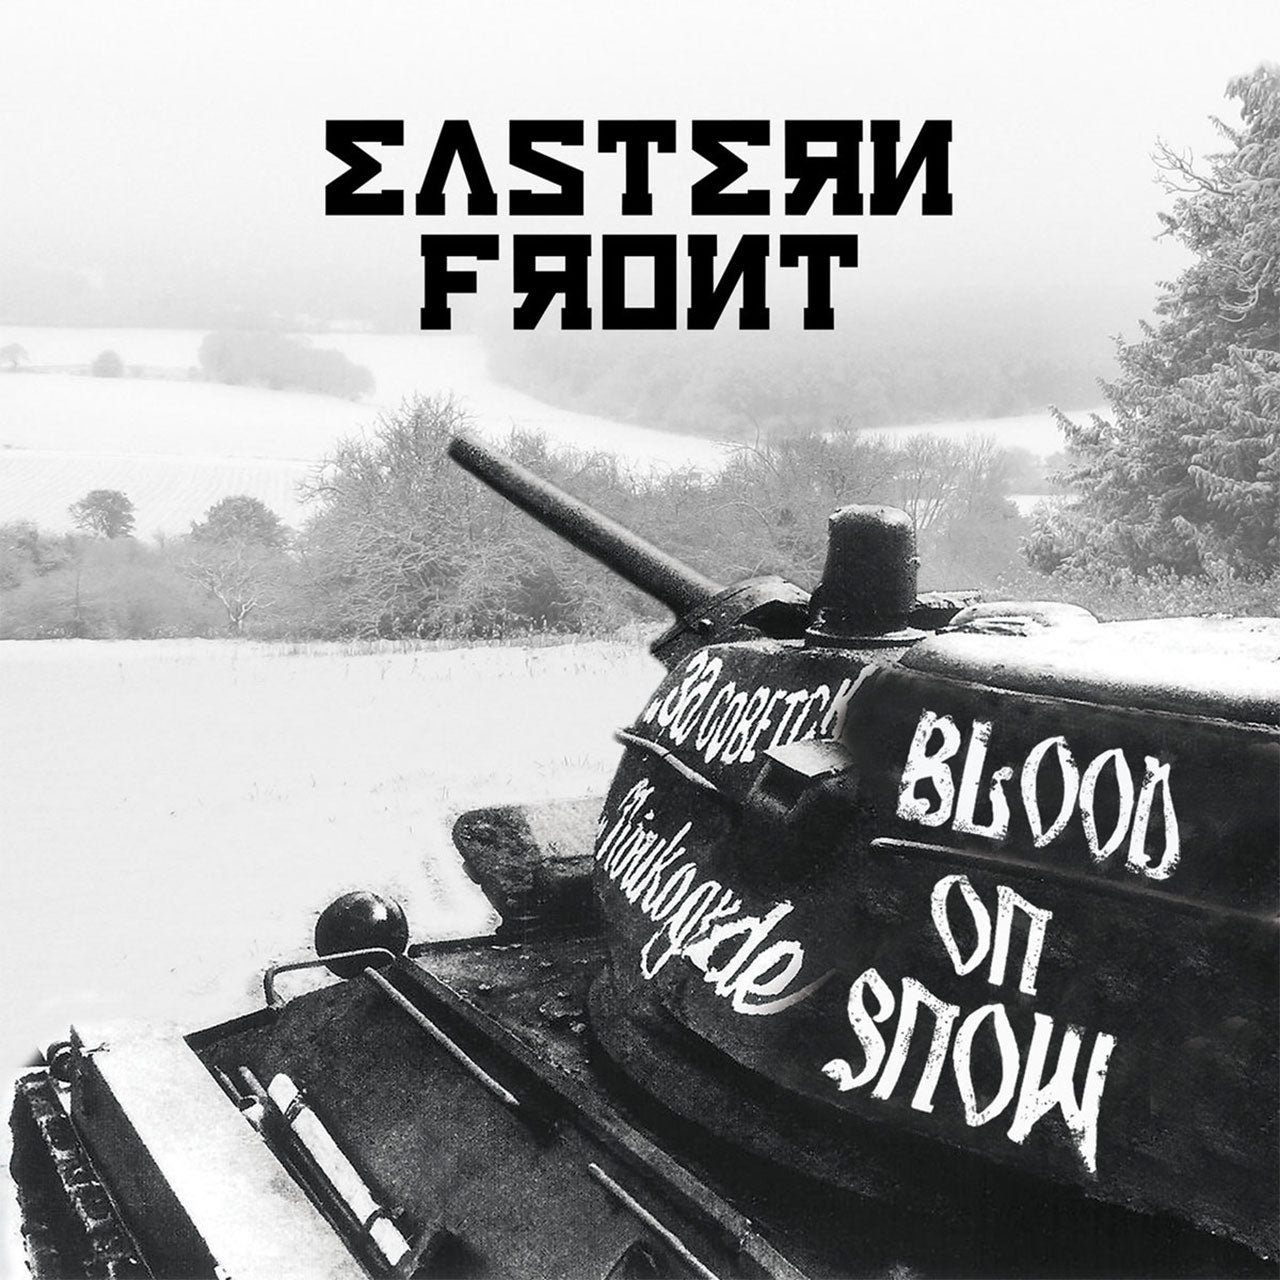 Eastern Front - Blood on Snow (CD)